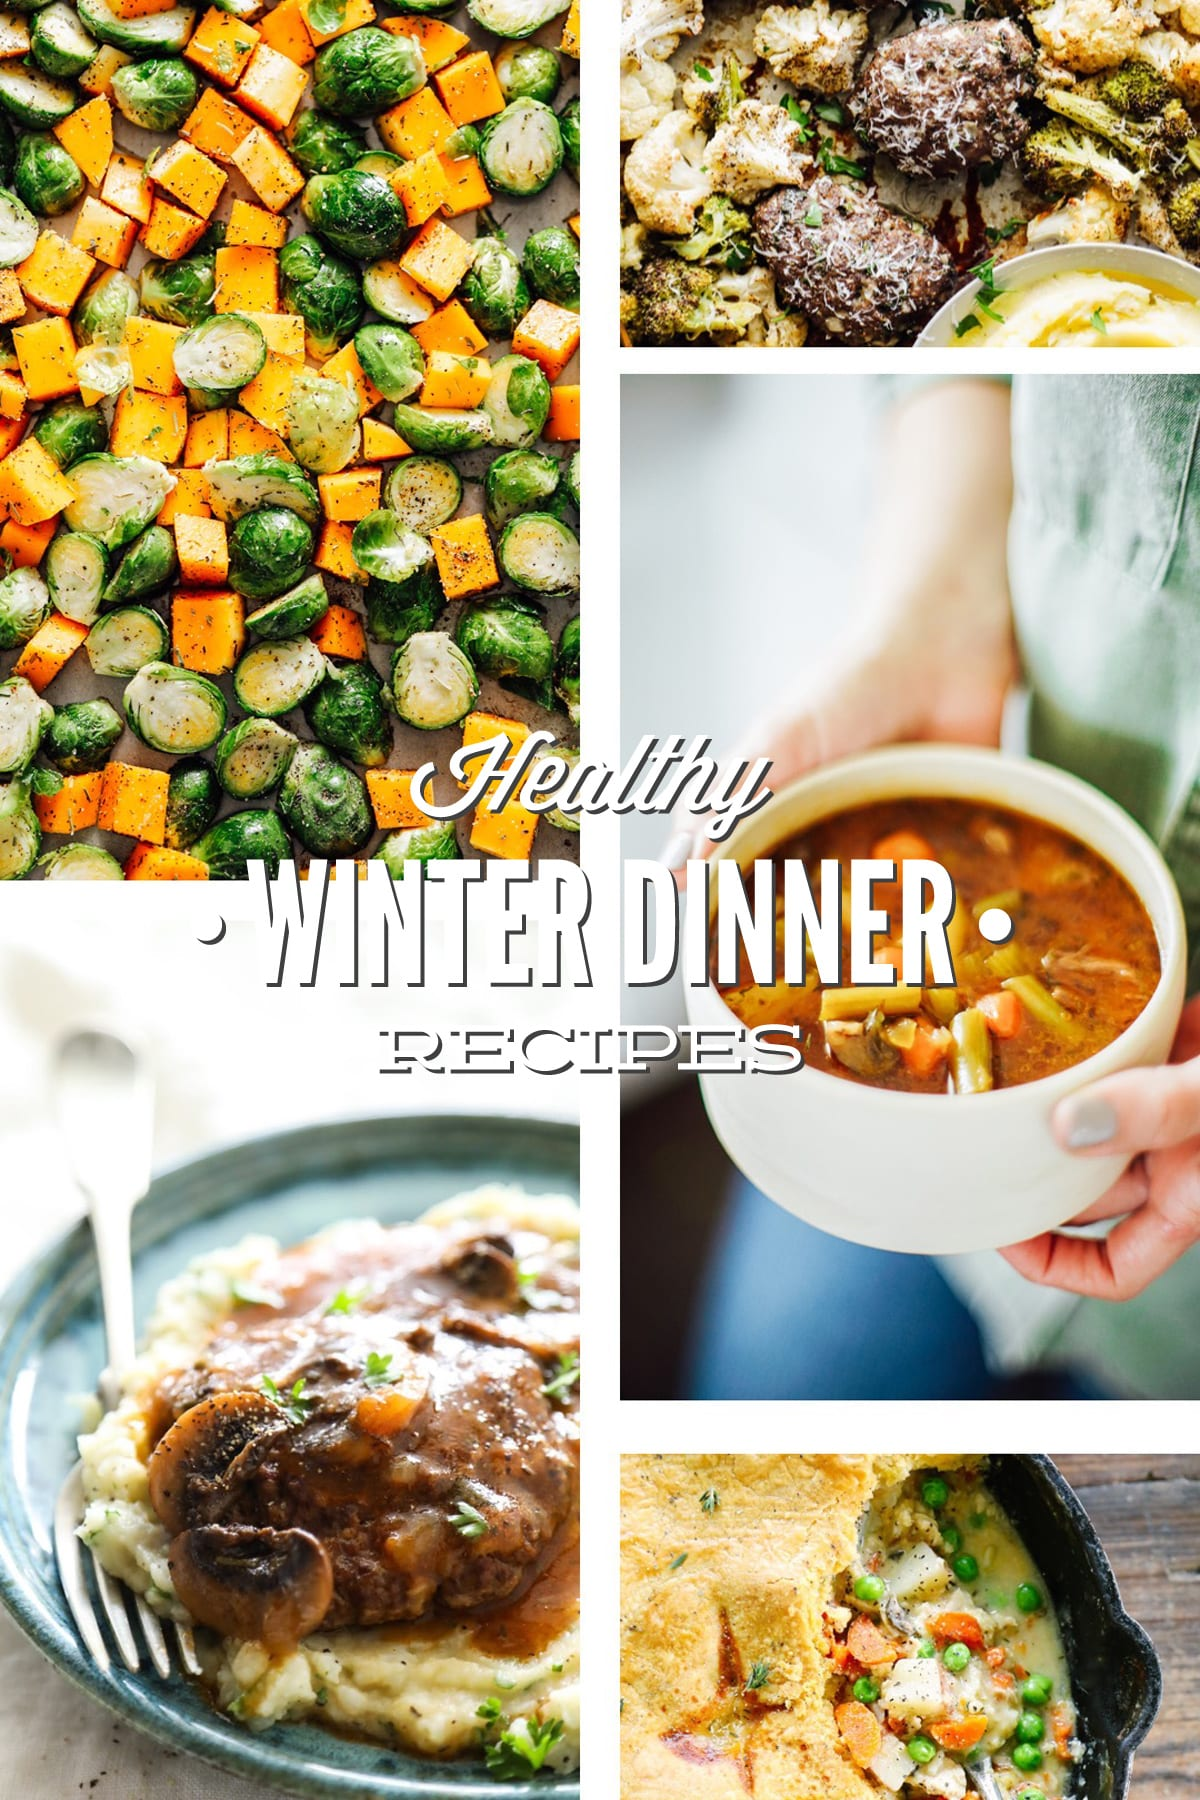 Healthy Dinner Recipes to Make This Winter